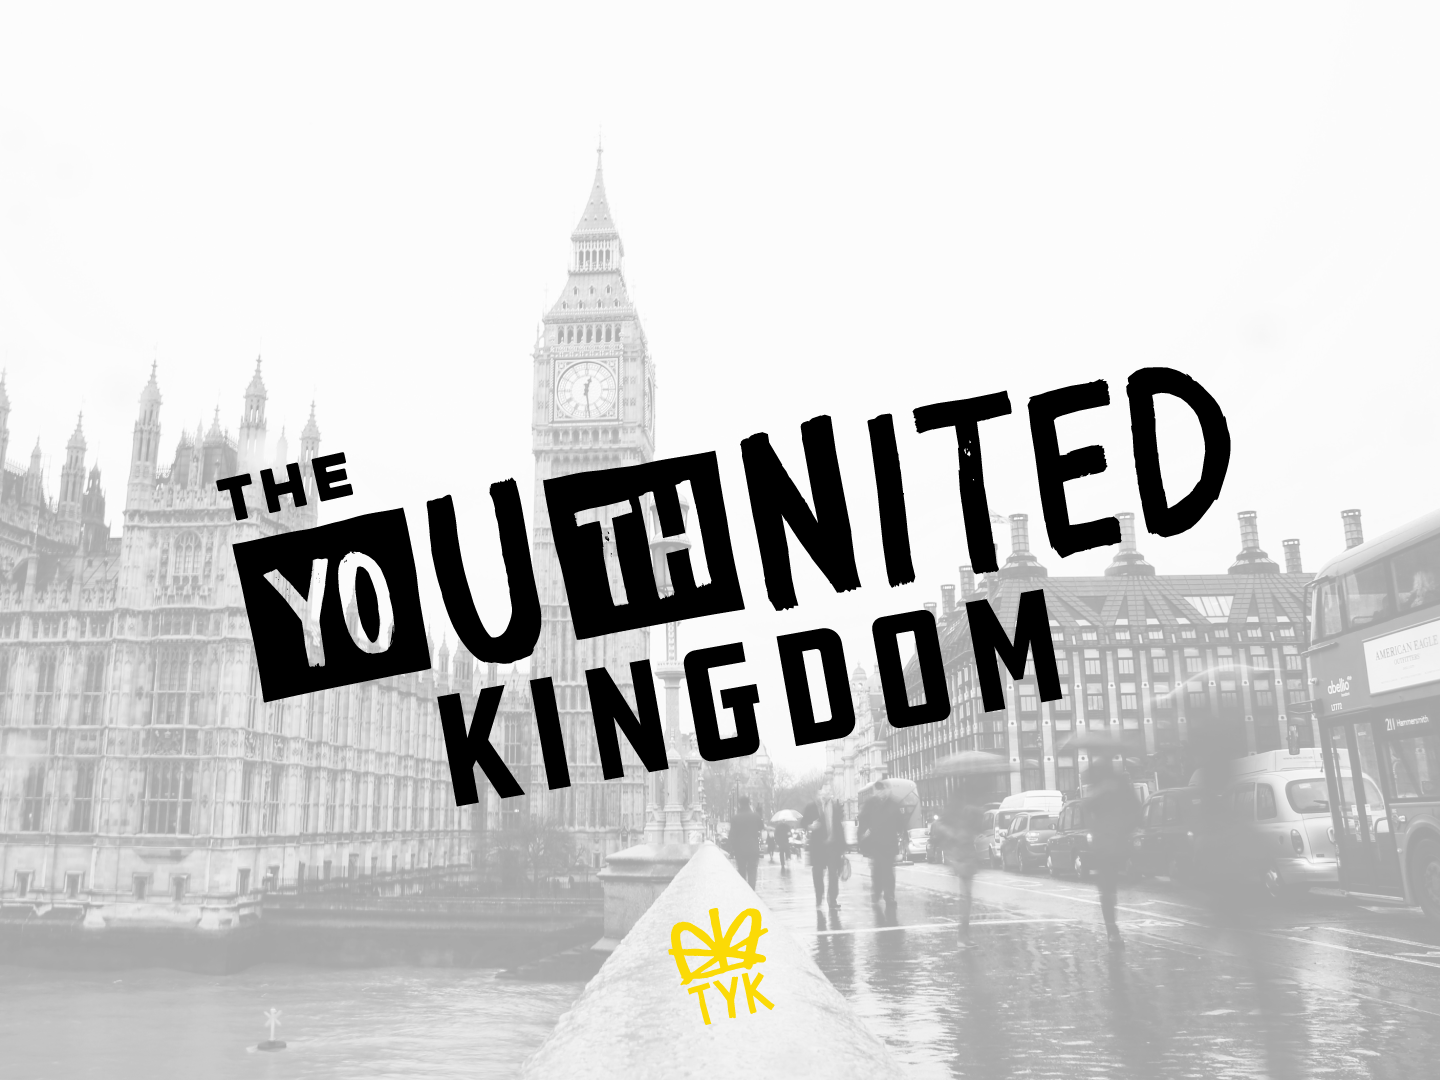 The Youthnited Kingdom typography lettering logomark branding logo